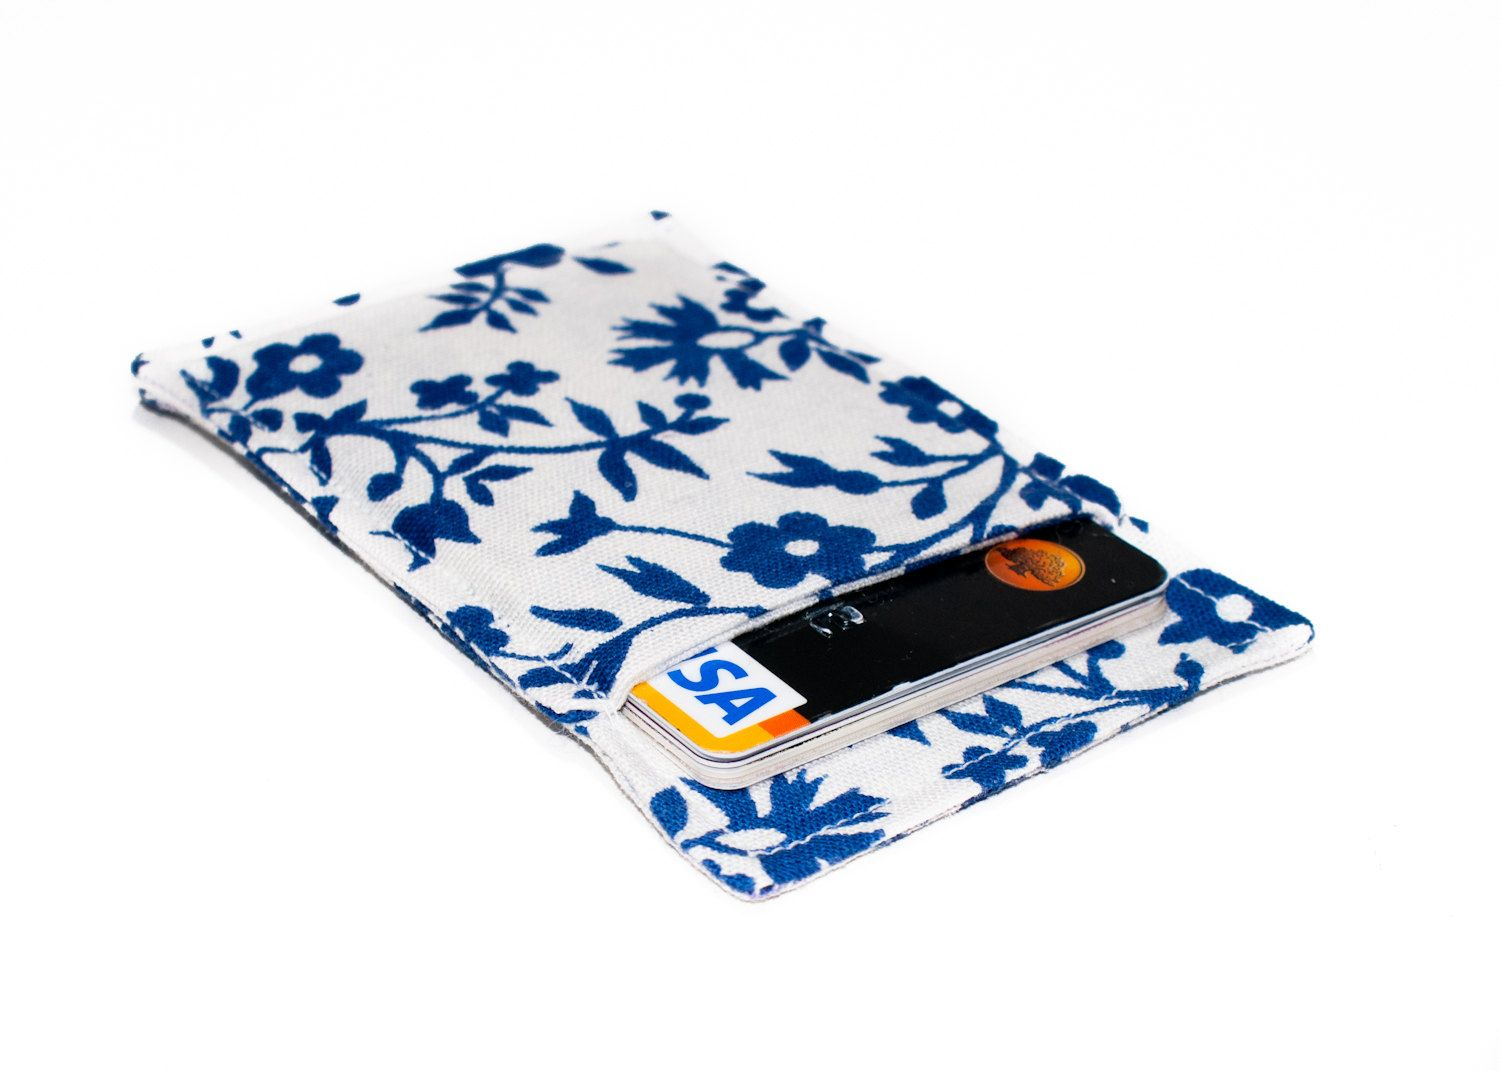 Credit Card Wallet  Minimalist Wallet  Slim Business Card Holder  Floral  Wallet  Business Card Holder  White And Blue Floral